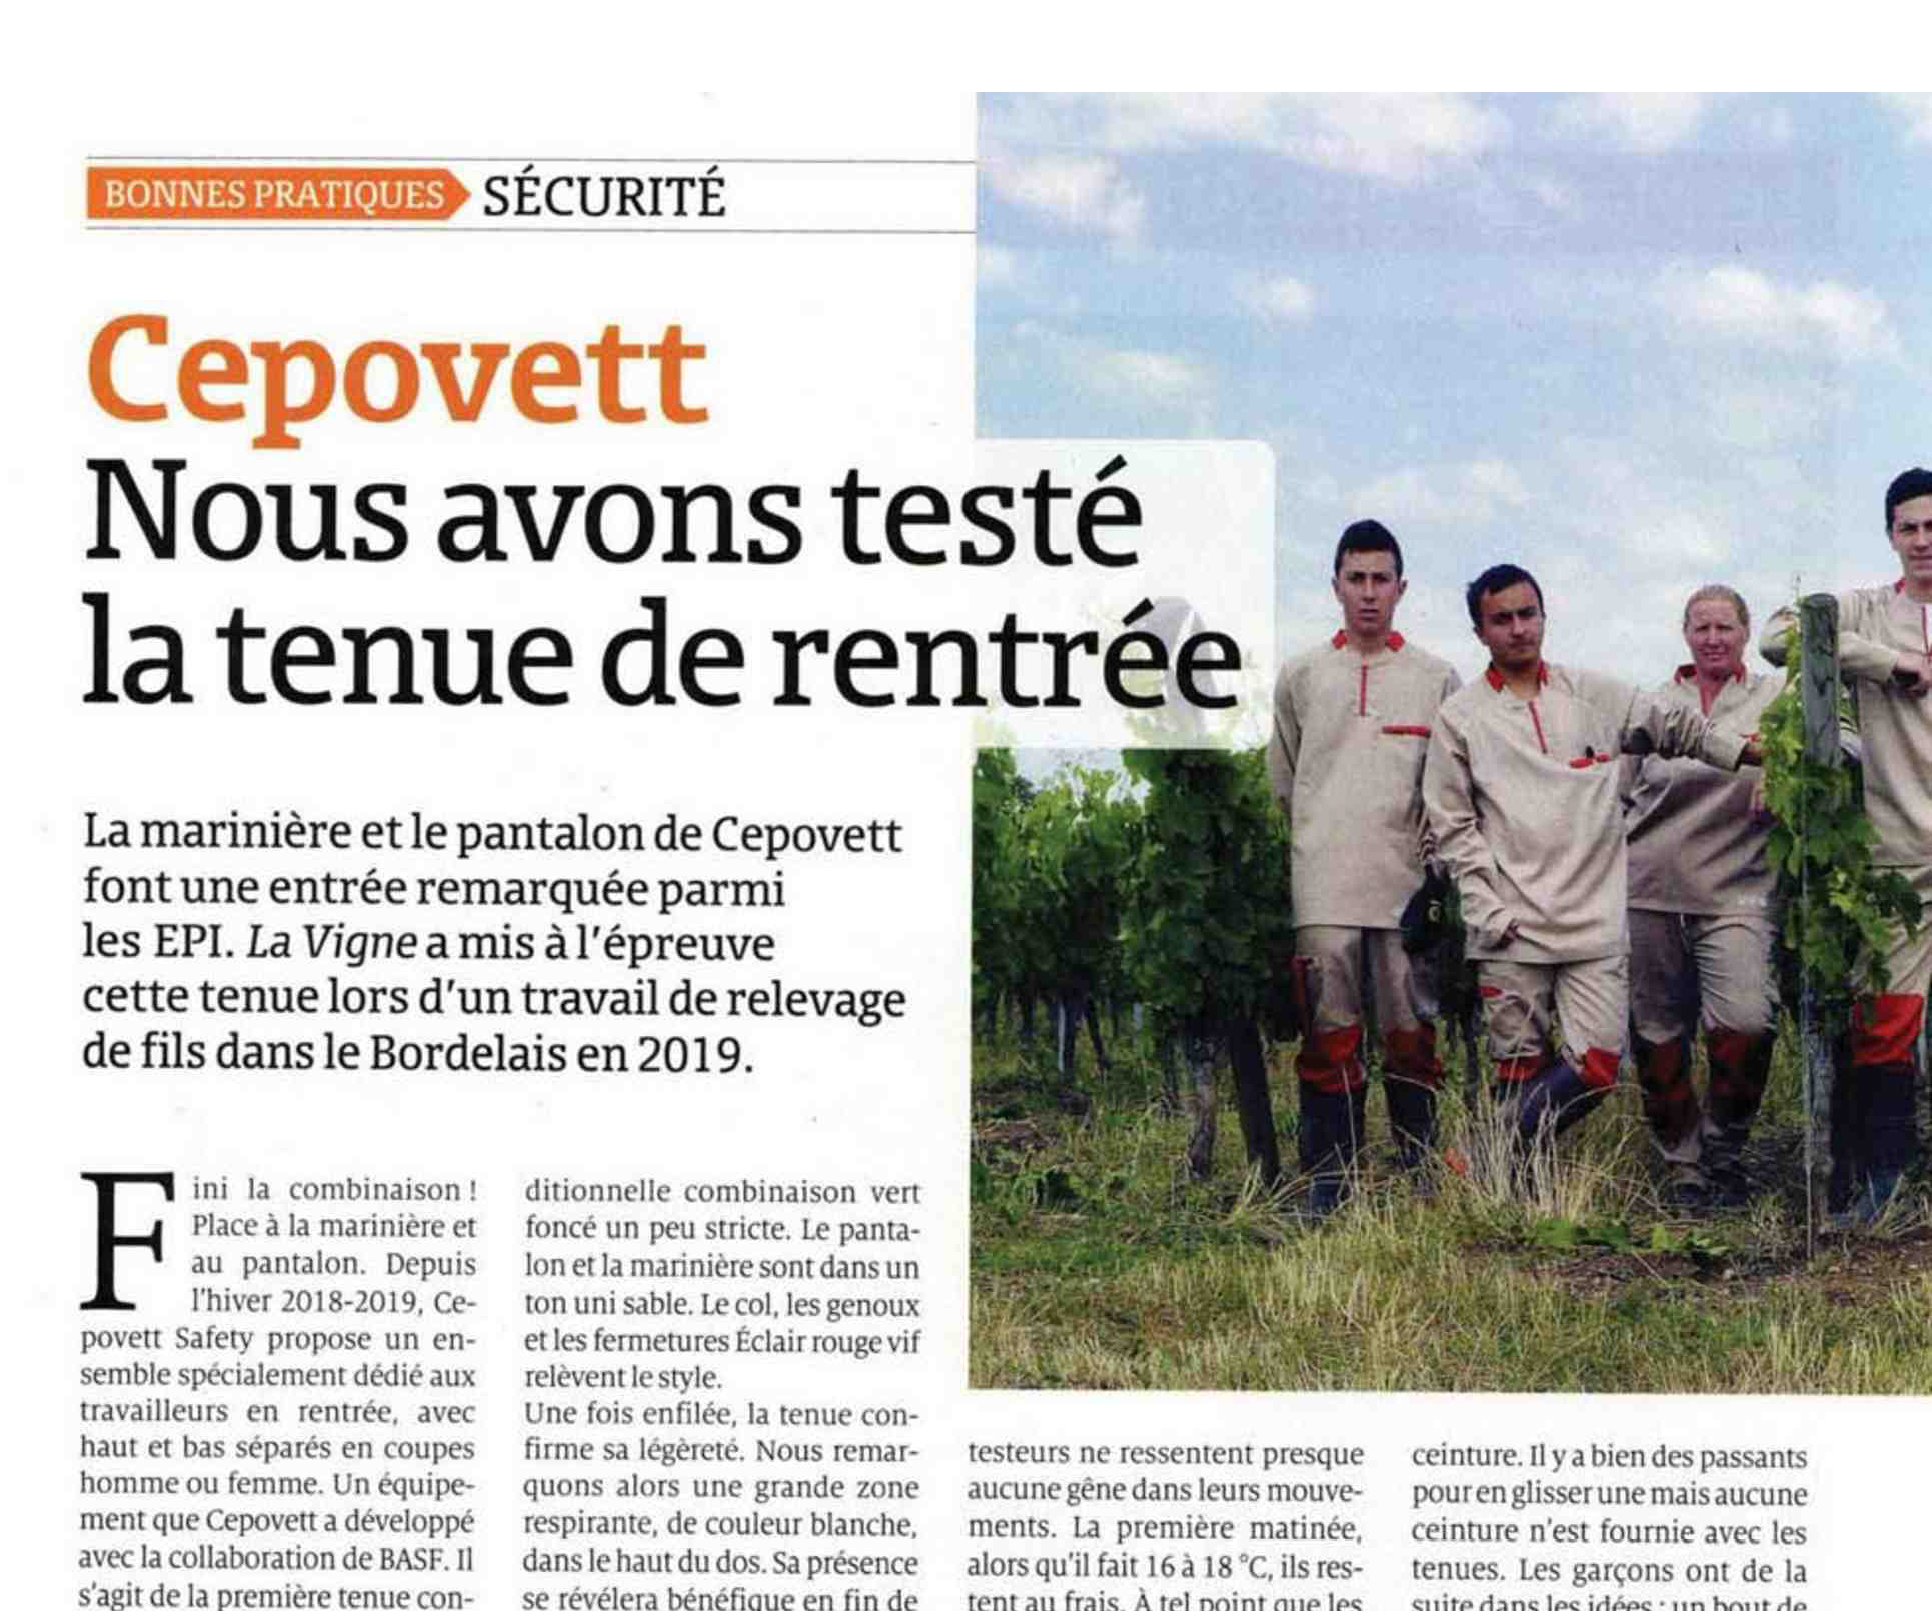 CEPOVETT_SAFETY_LA_VIGNE_17022020